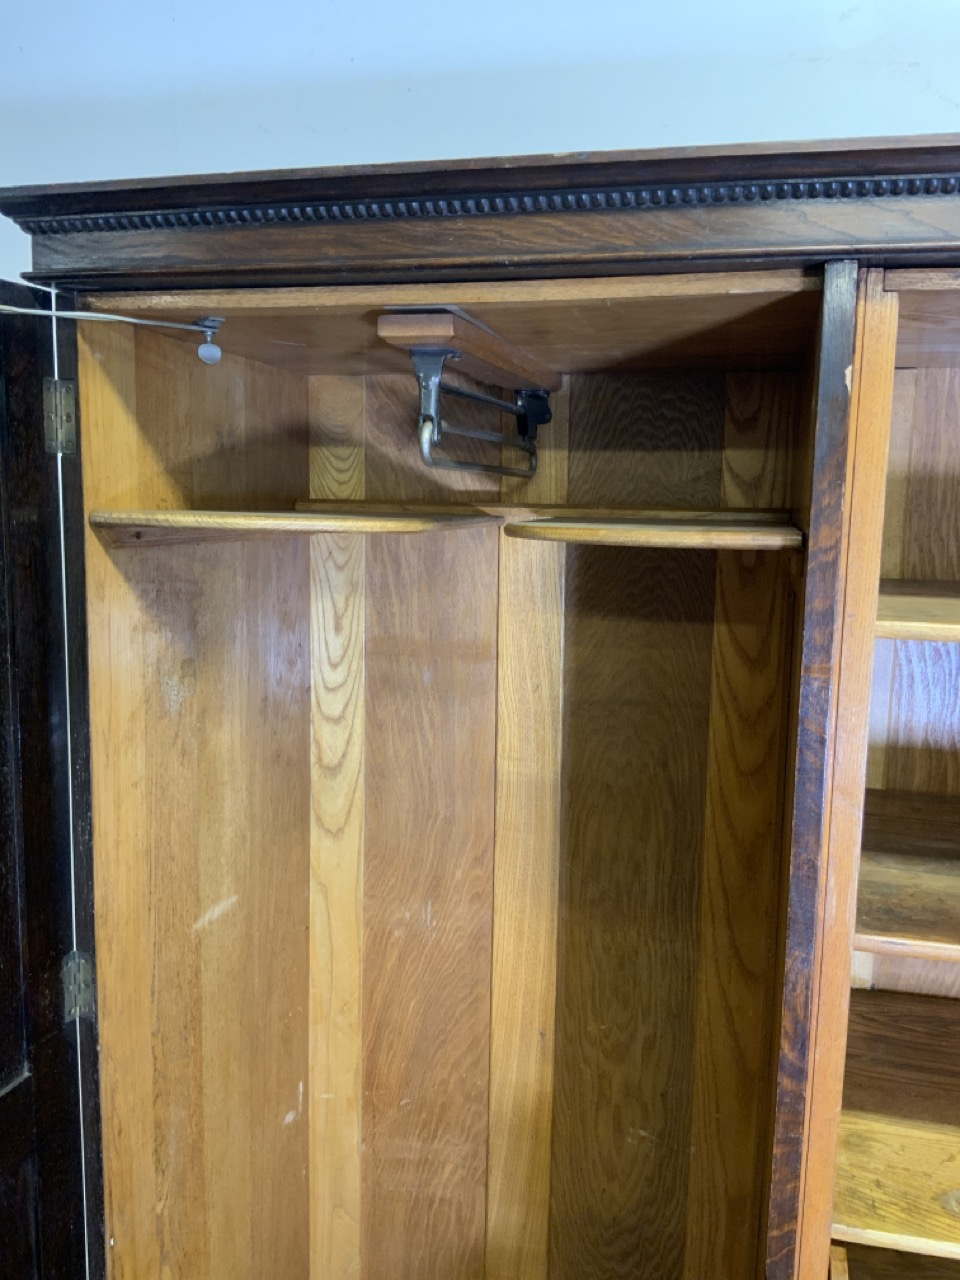 An early 20th century gentleman's oak double wardrobe by Awlyn furniture with fitted shelves, - Image 5 of 10